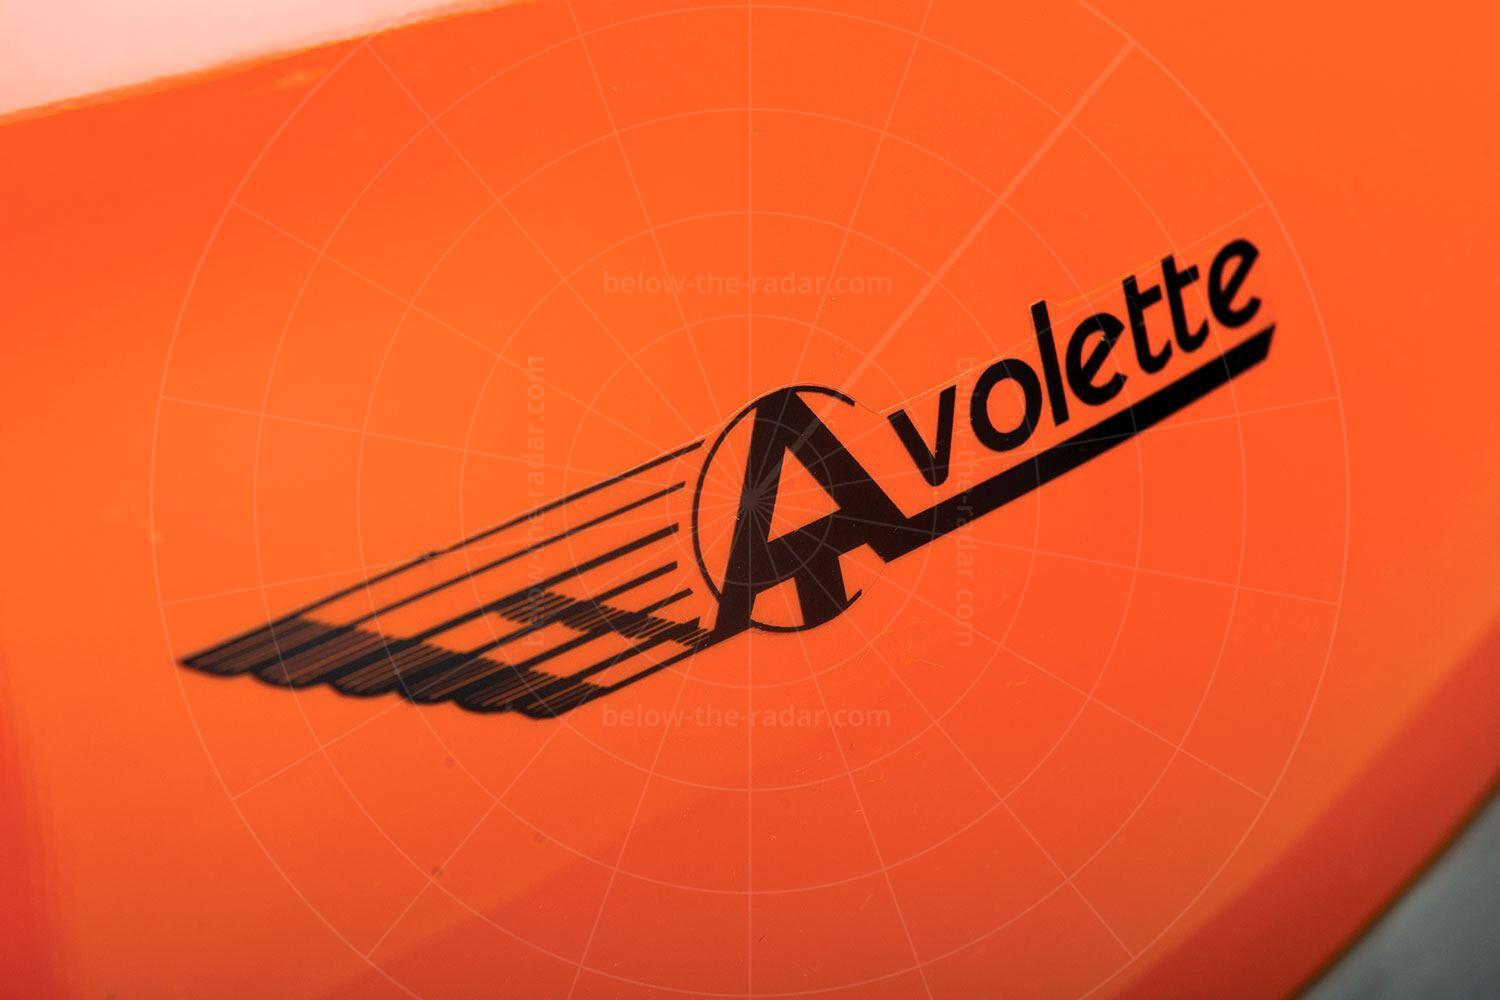 Avolette Record Deluxe decal Pic: RM Sotheby's | Avolette Record Deluxe decal